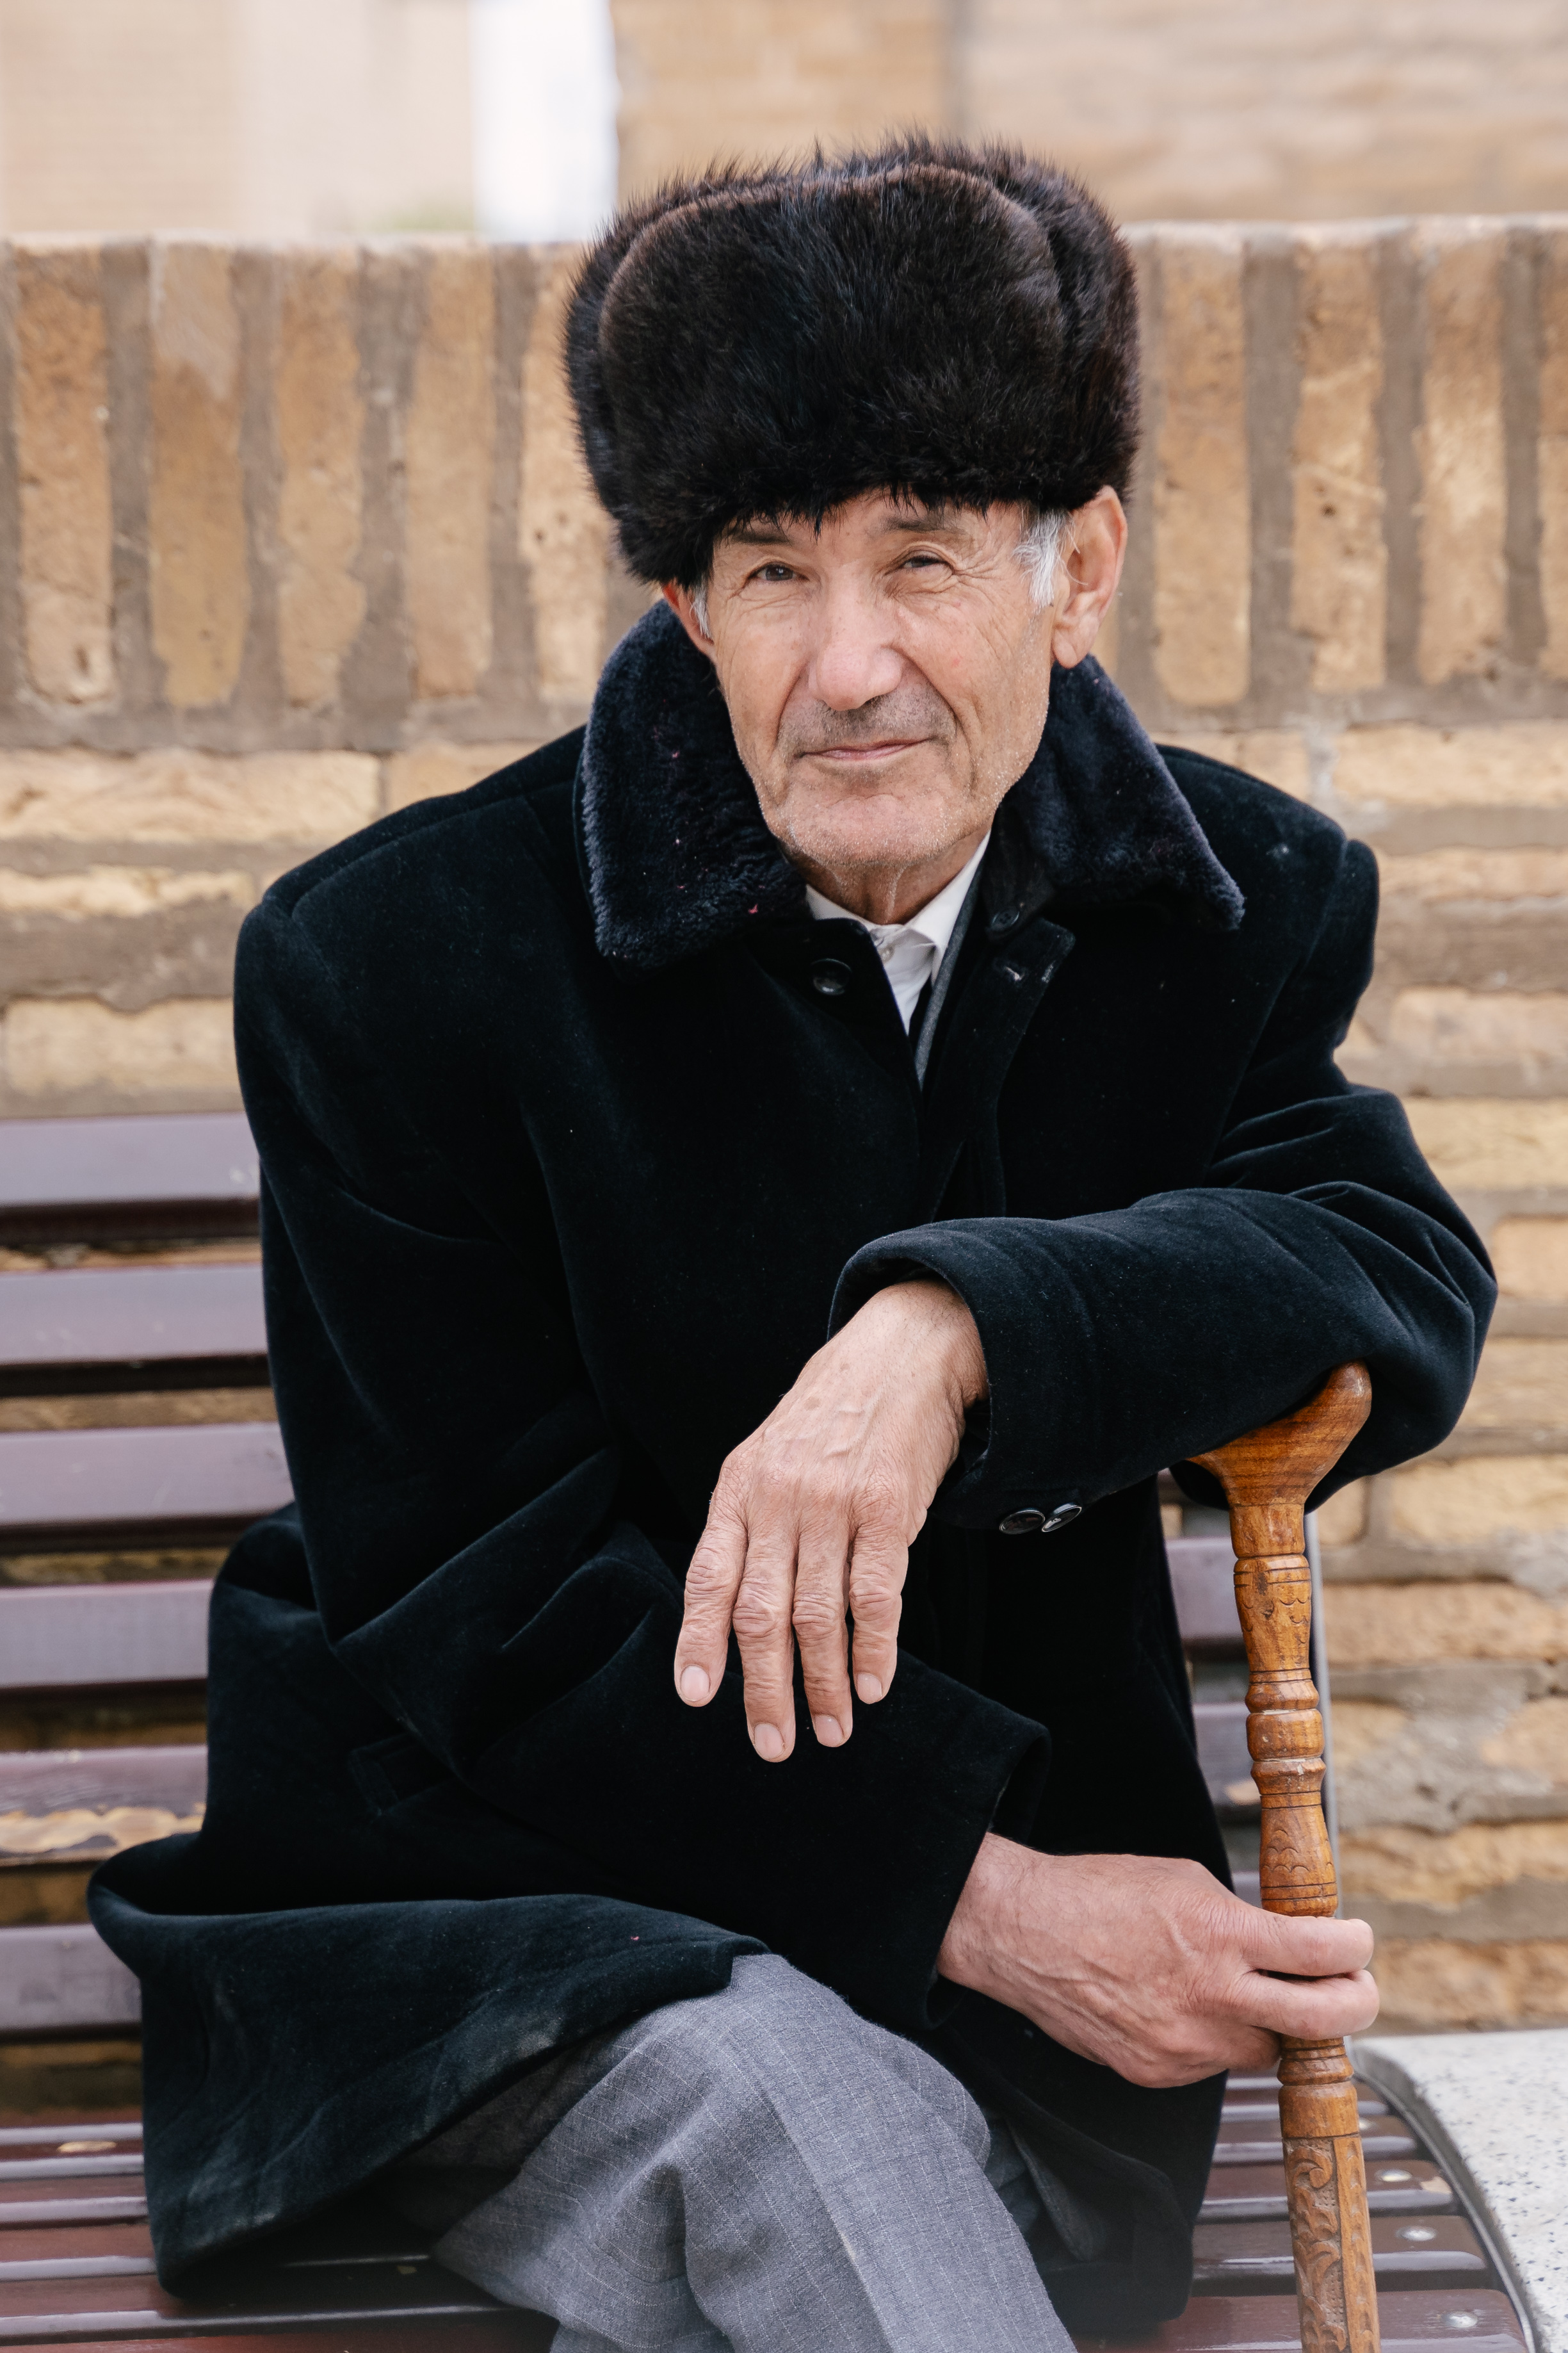 Man with a fur hat.